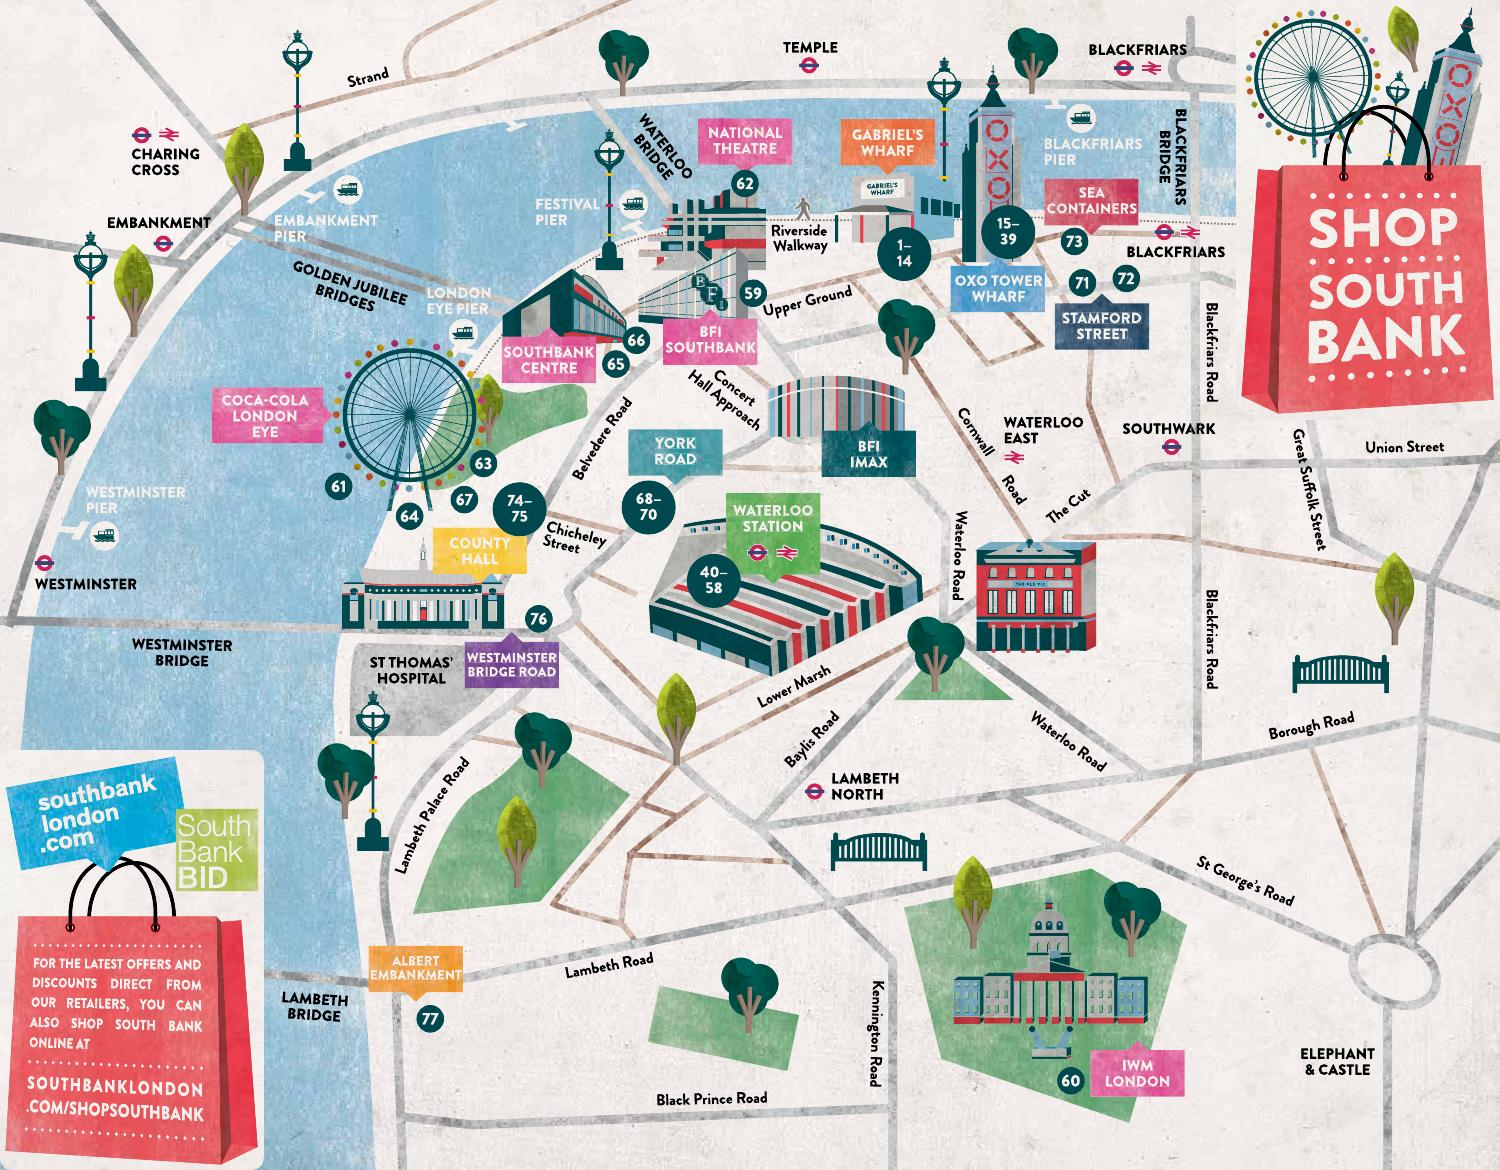 South London Areas Map.Shop South Bank Map By South Bank London Issuu